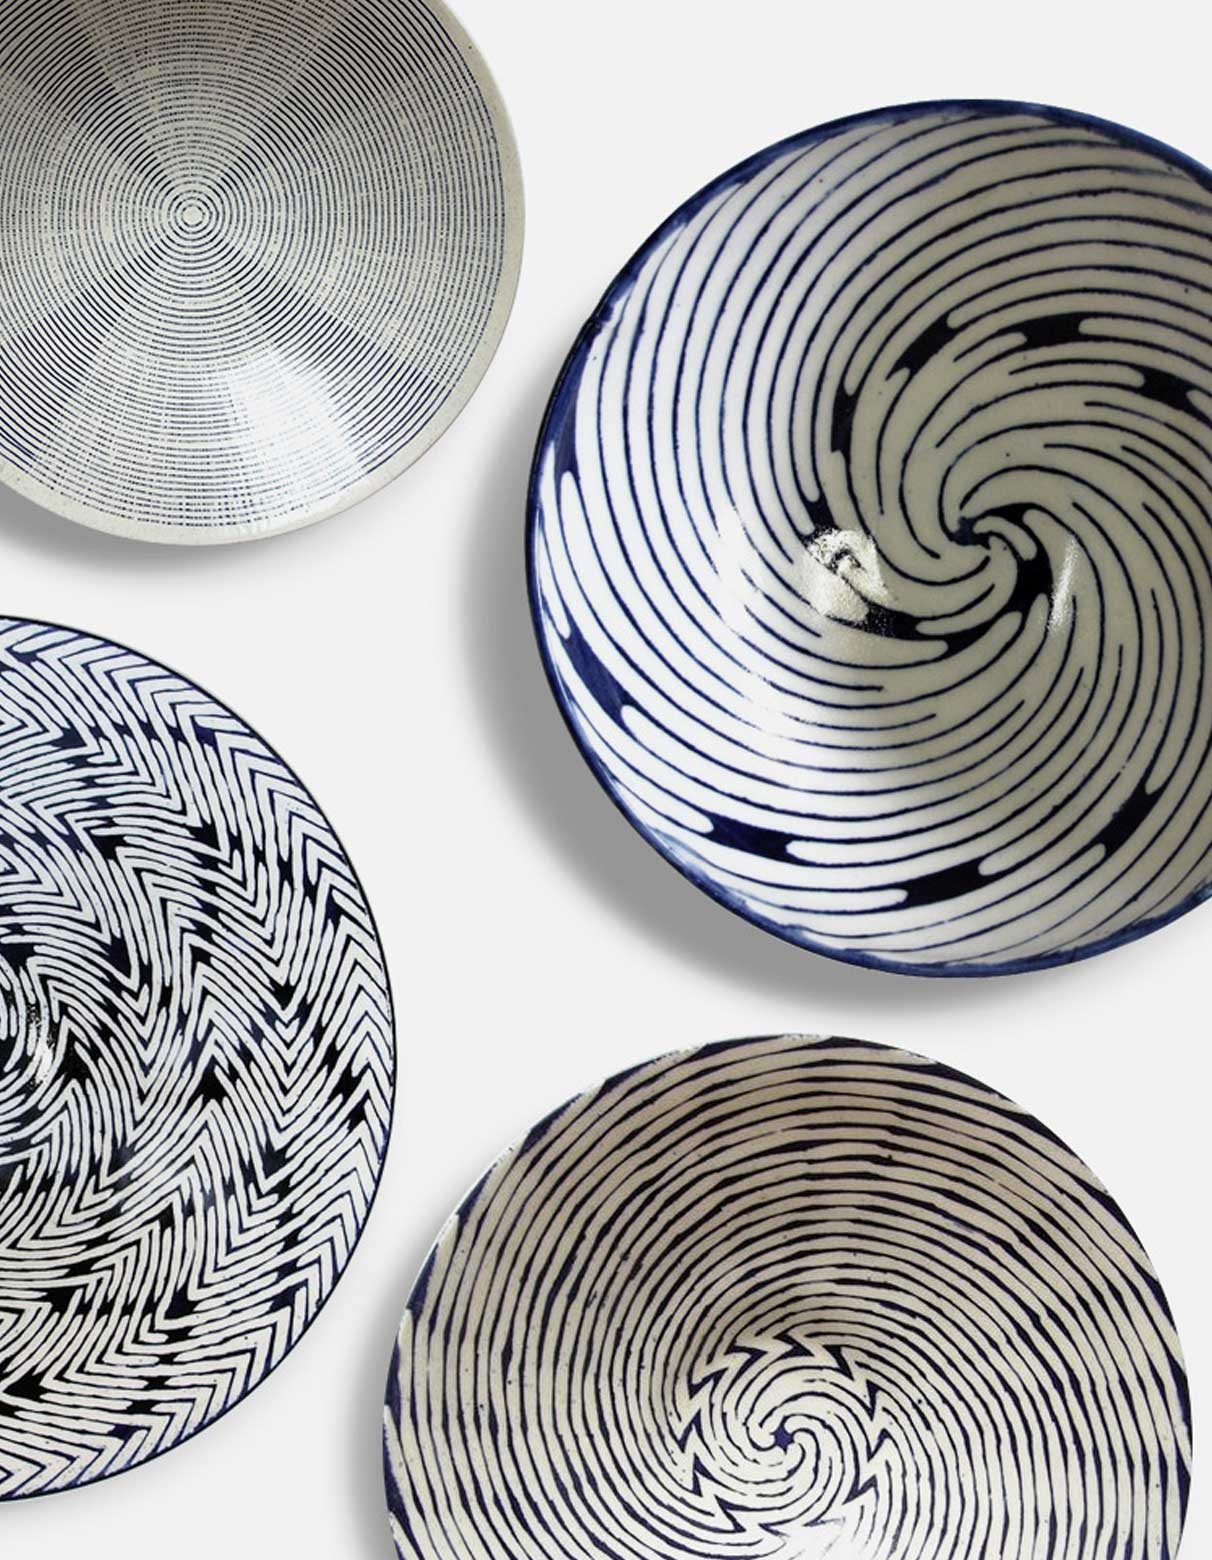 Mutapo Ceramics Inspired by Zimbabwe's Basket Weaving Traditions